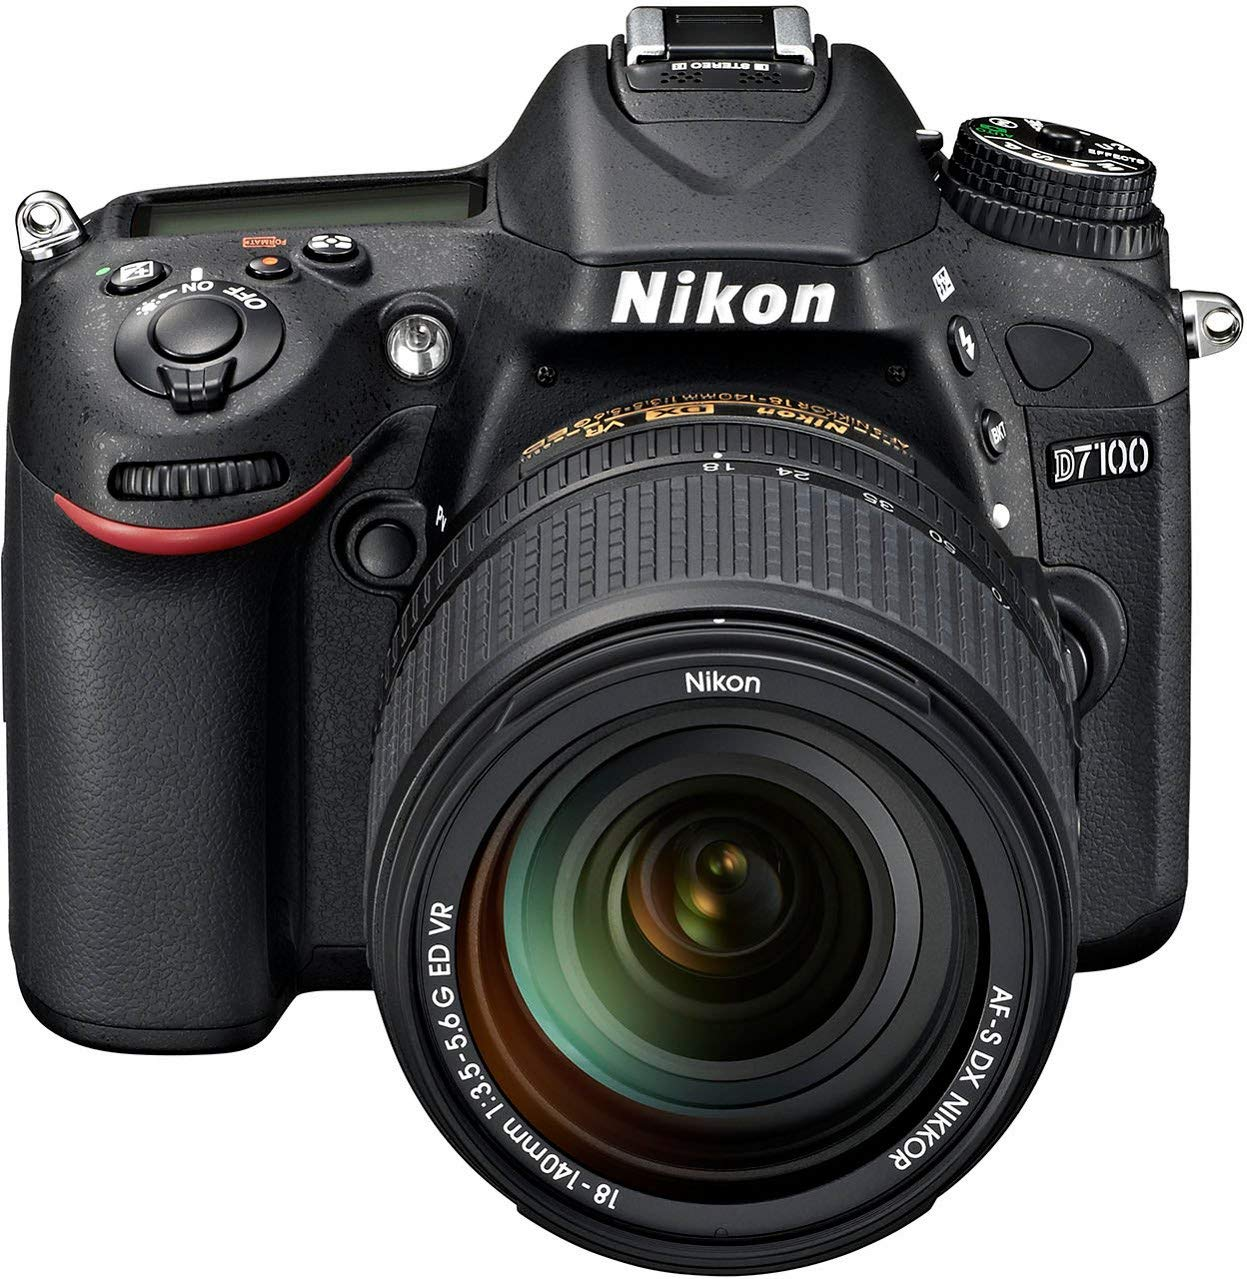 "Nikon D7100 - Cámara réflex digital de 24.1 Mp (Pantalla 3.2"", estabilizador óptico, vídeo Full HD), negro - kit con objetivo 18-140 mm VR"